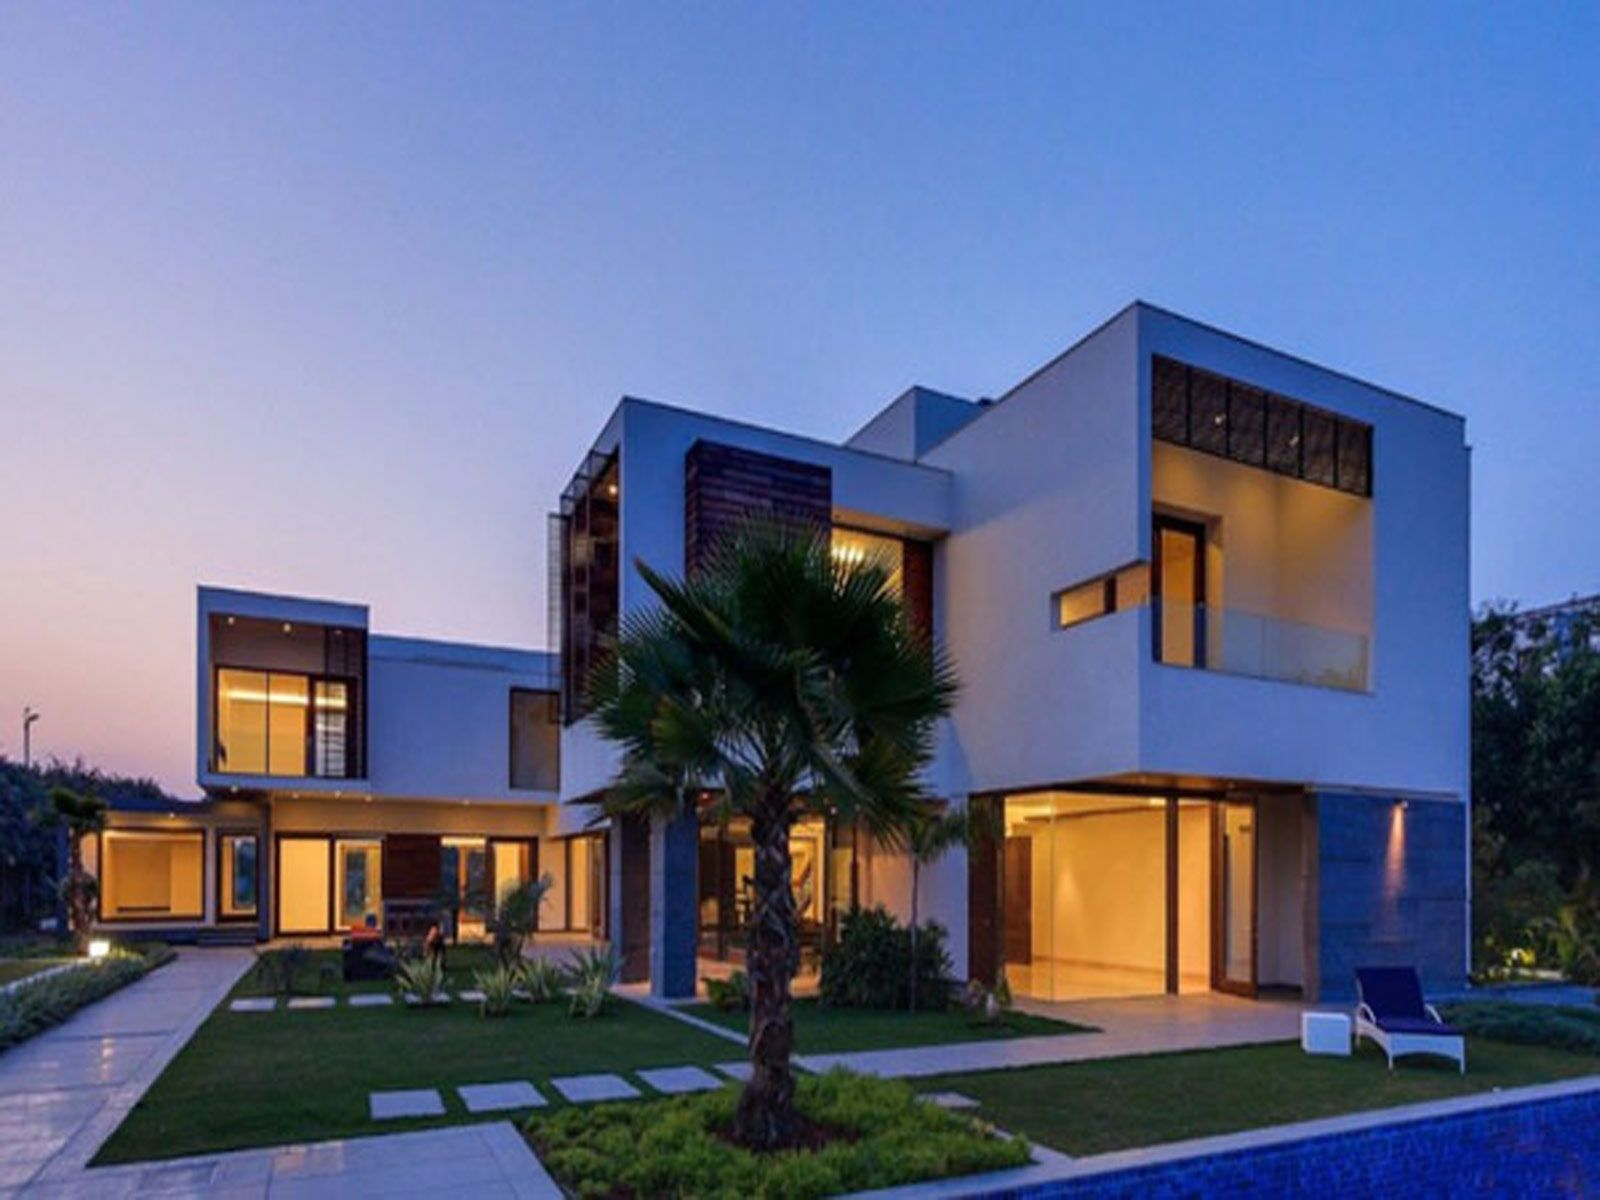 South court villa by dada partners luxurious modern villa in chhattarpur new delhi designed by local architecture company dada partners